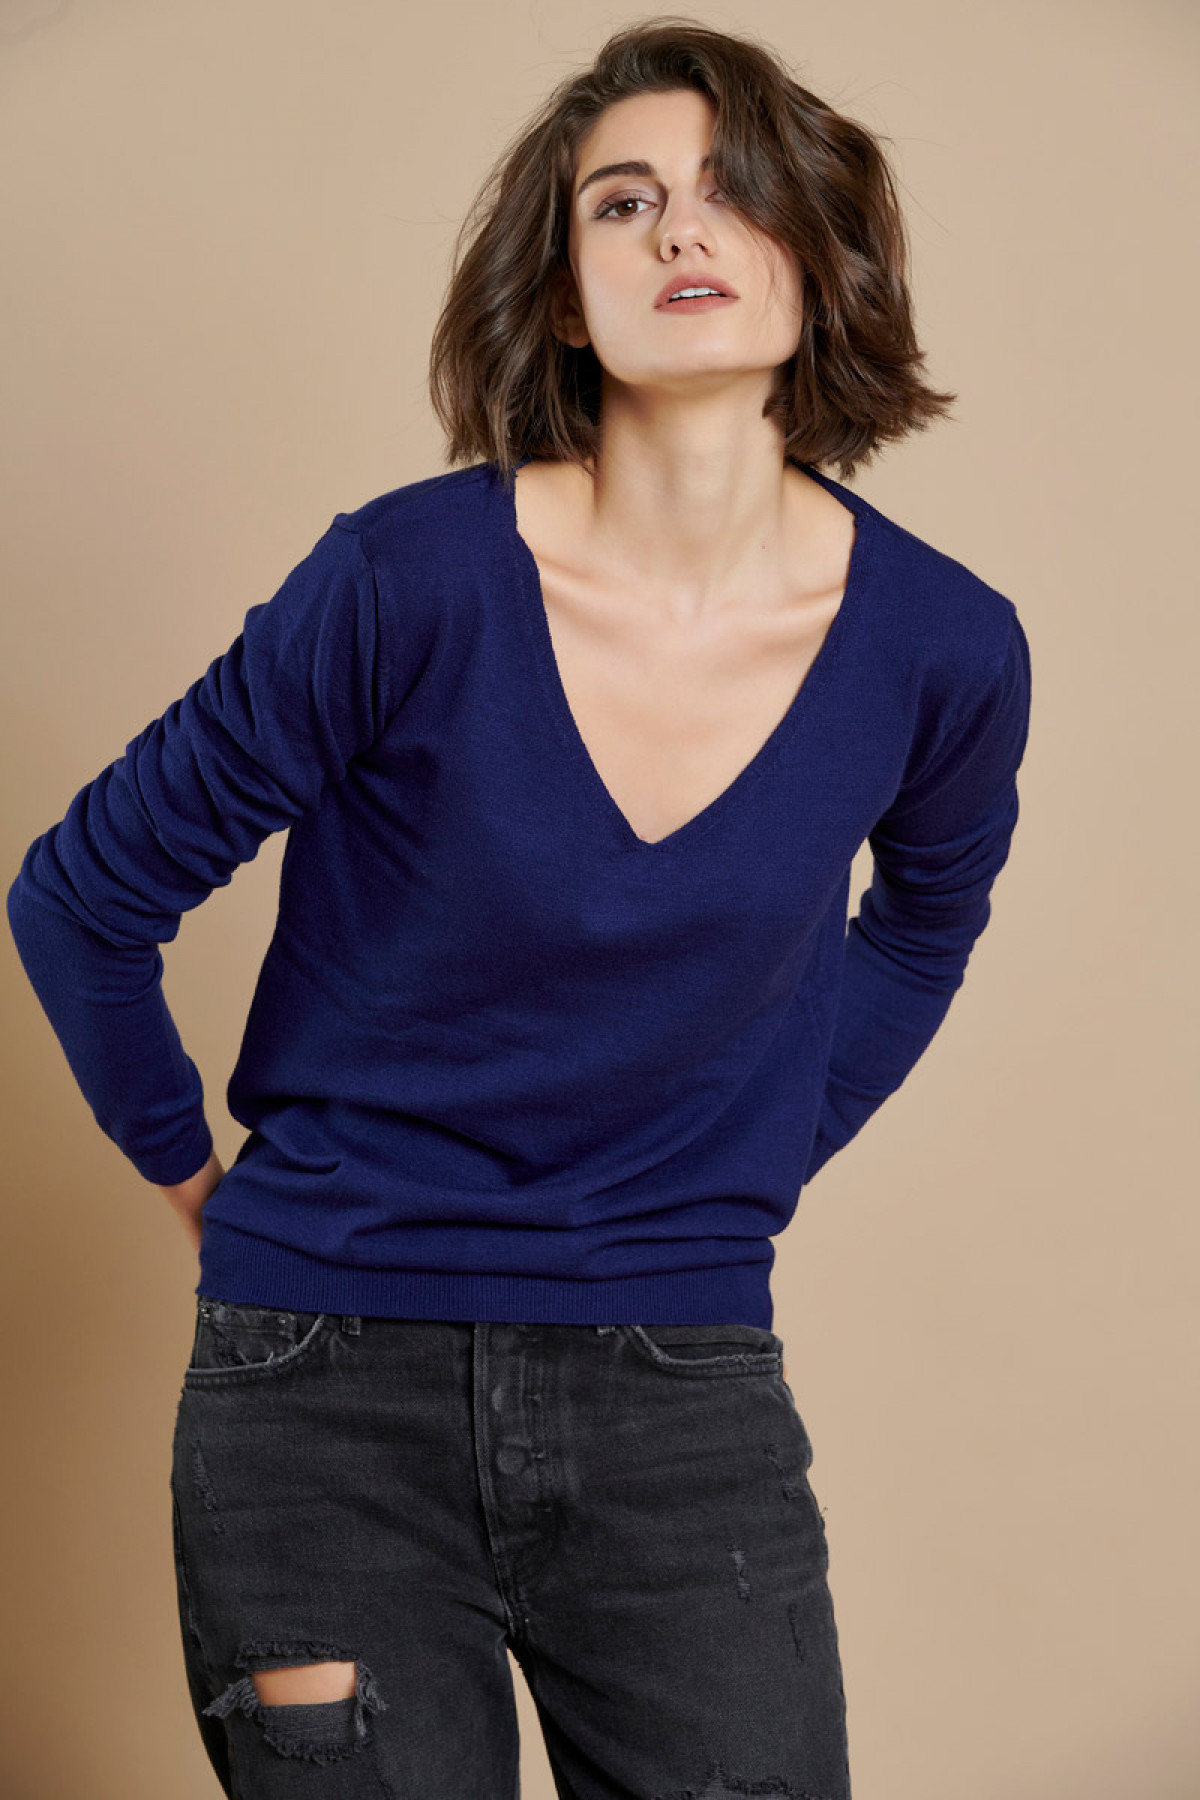 NAVY BLUE BASIC V NECK KNIT SWEATER